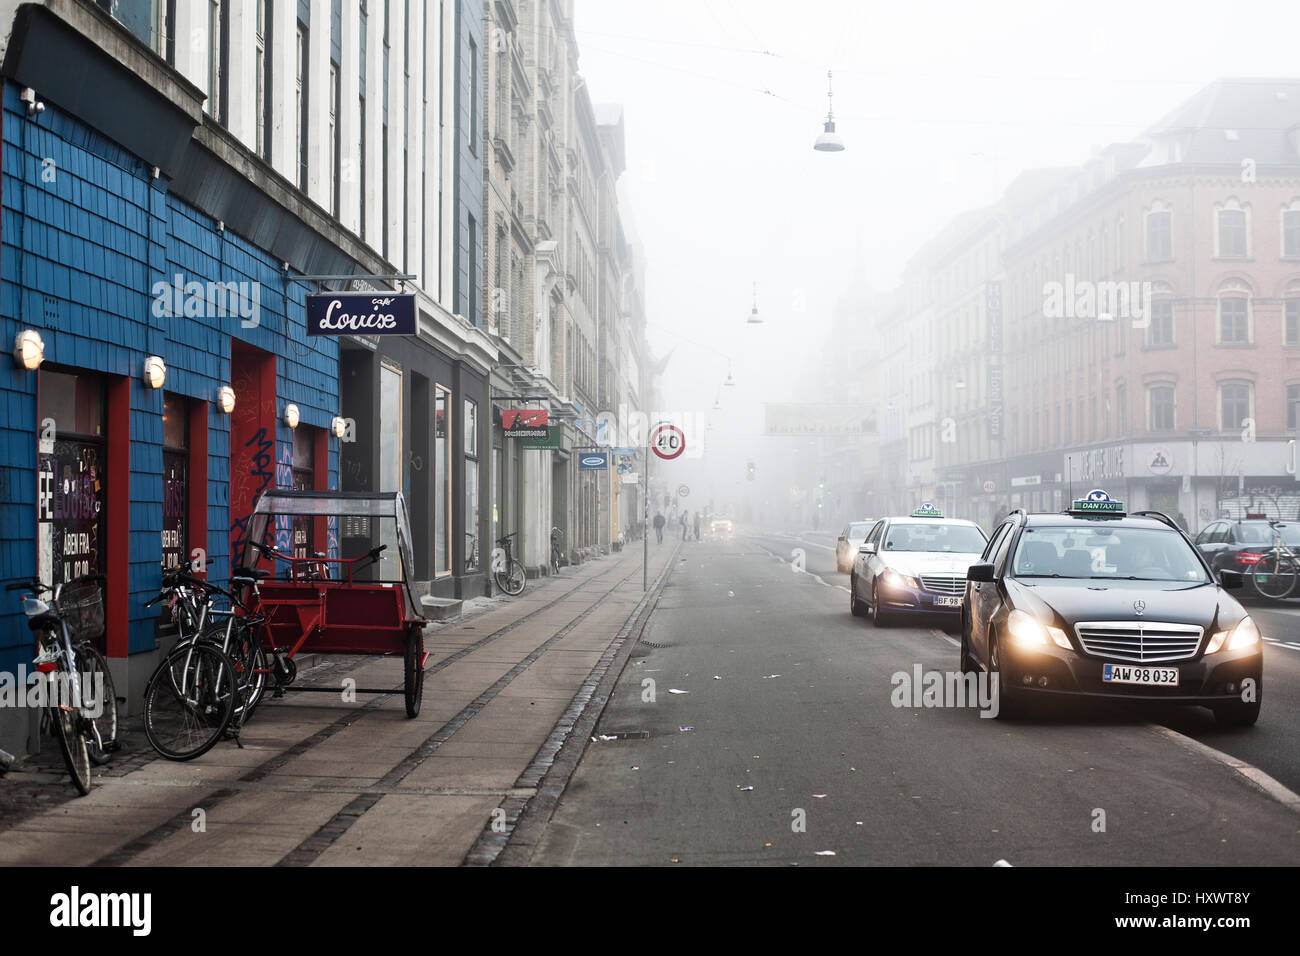 The streets of Norrebrogade is known for multitude shops and restaurants, which is one of the main points of interest - Stock Image